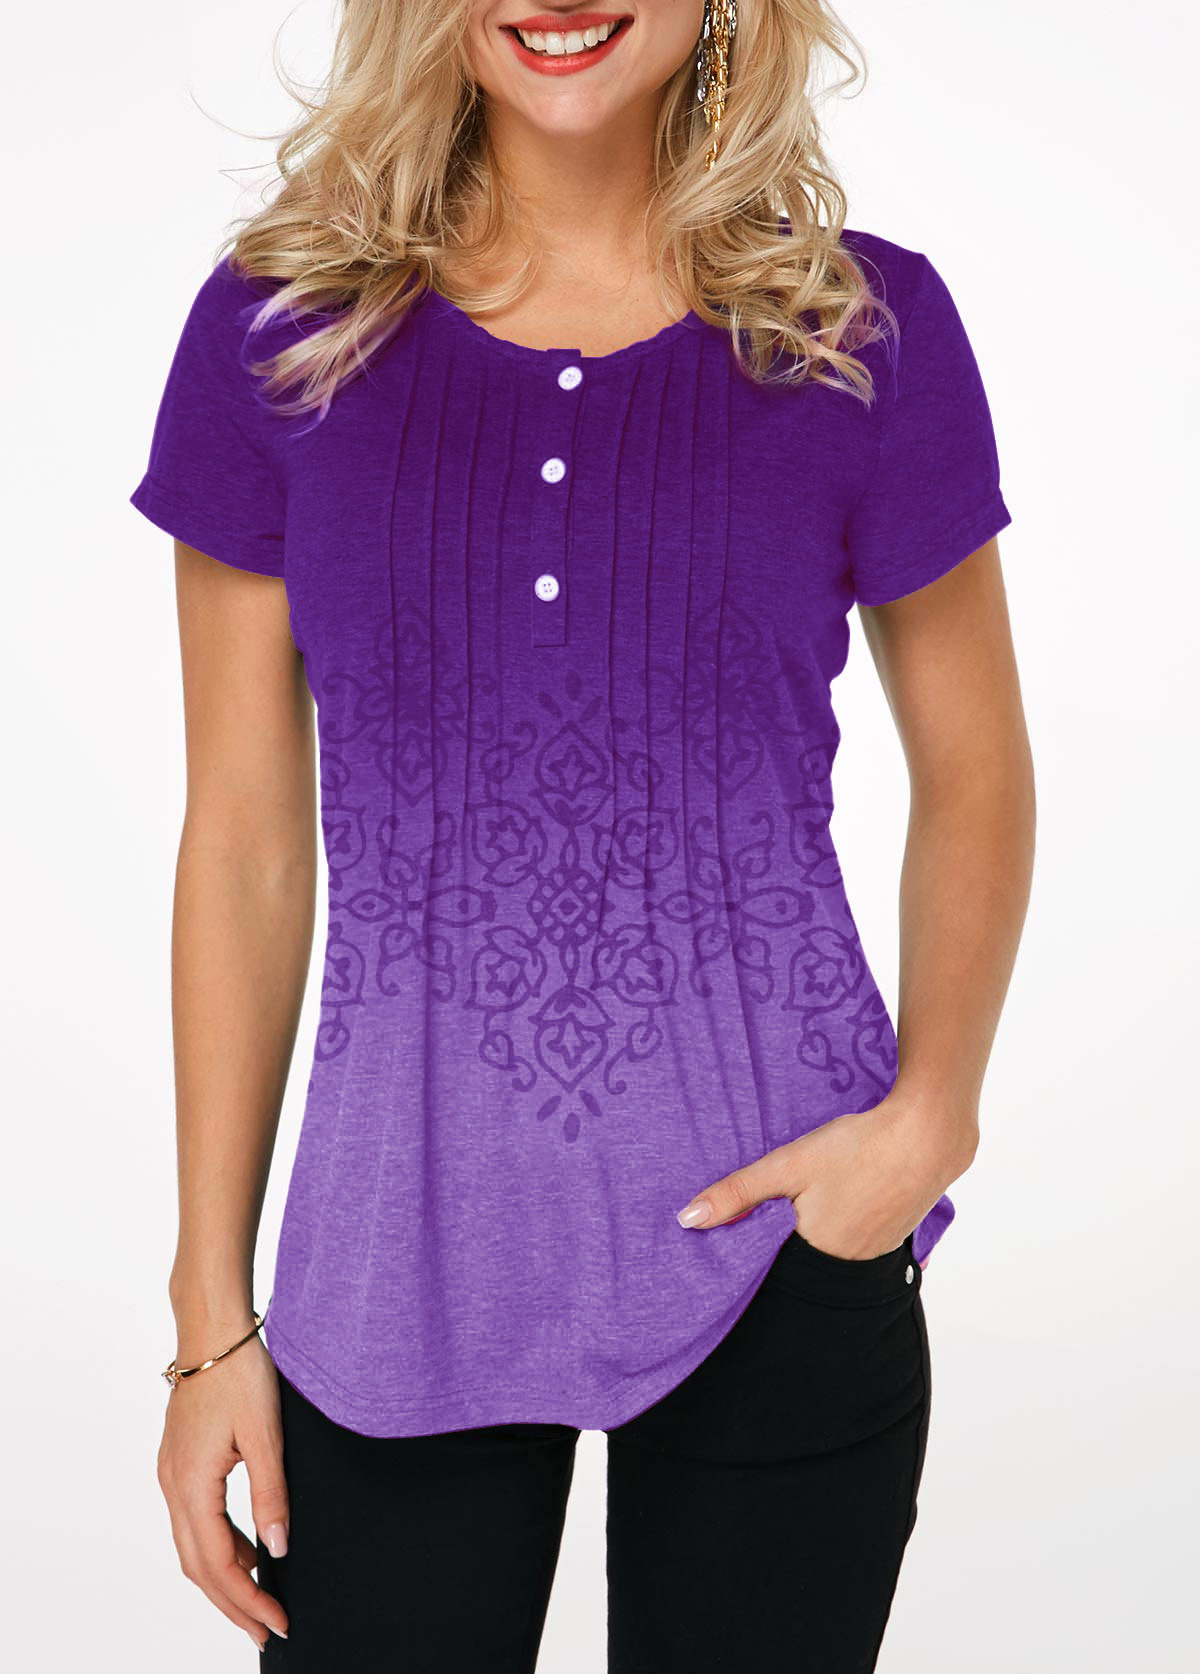 Button Detail Crinkle Chest Printed Gradient T Shirt